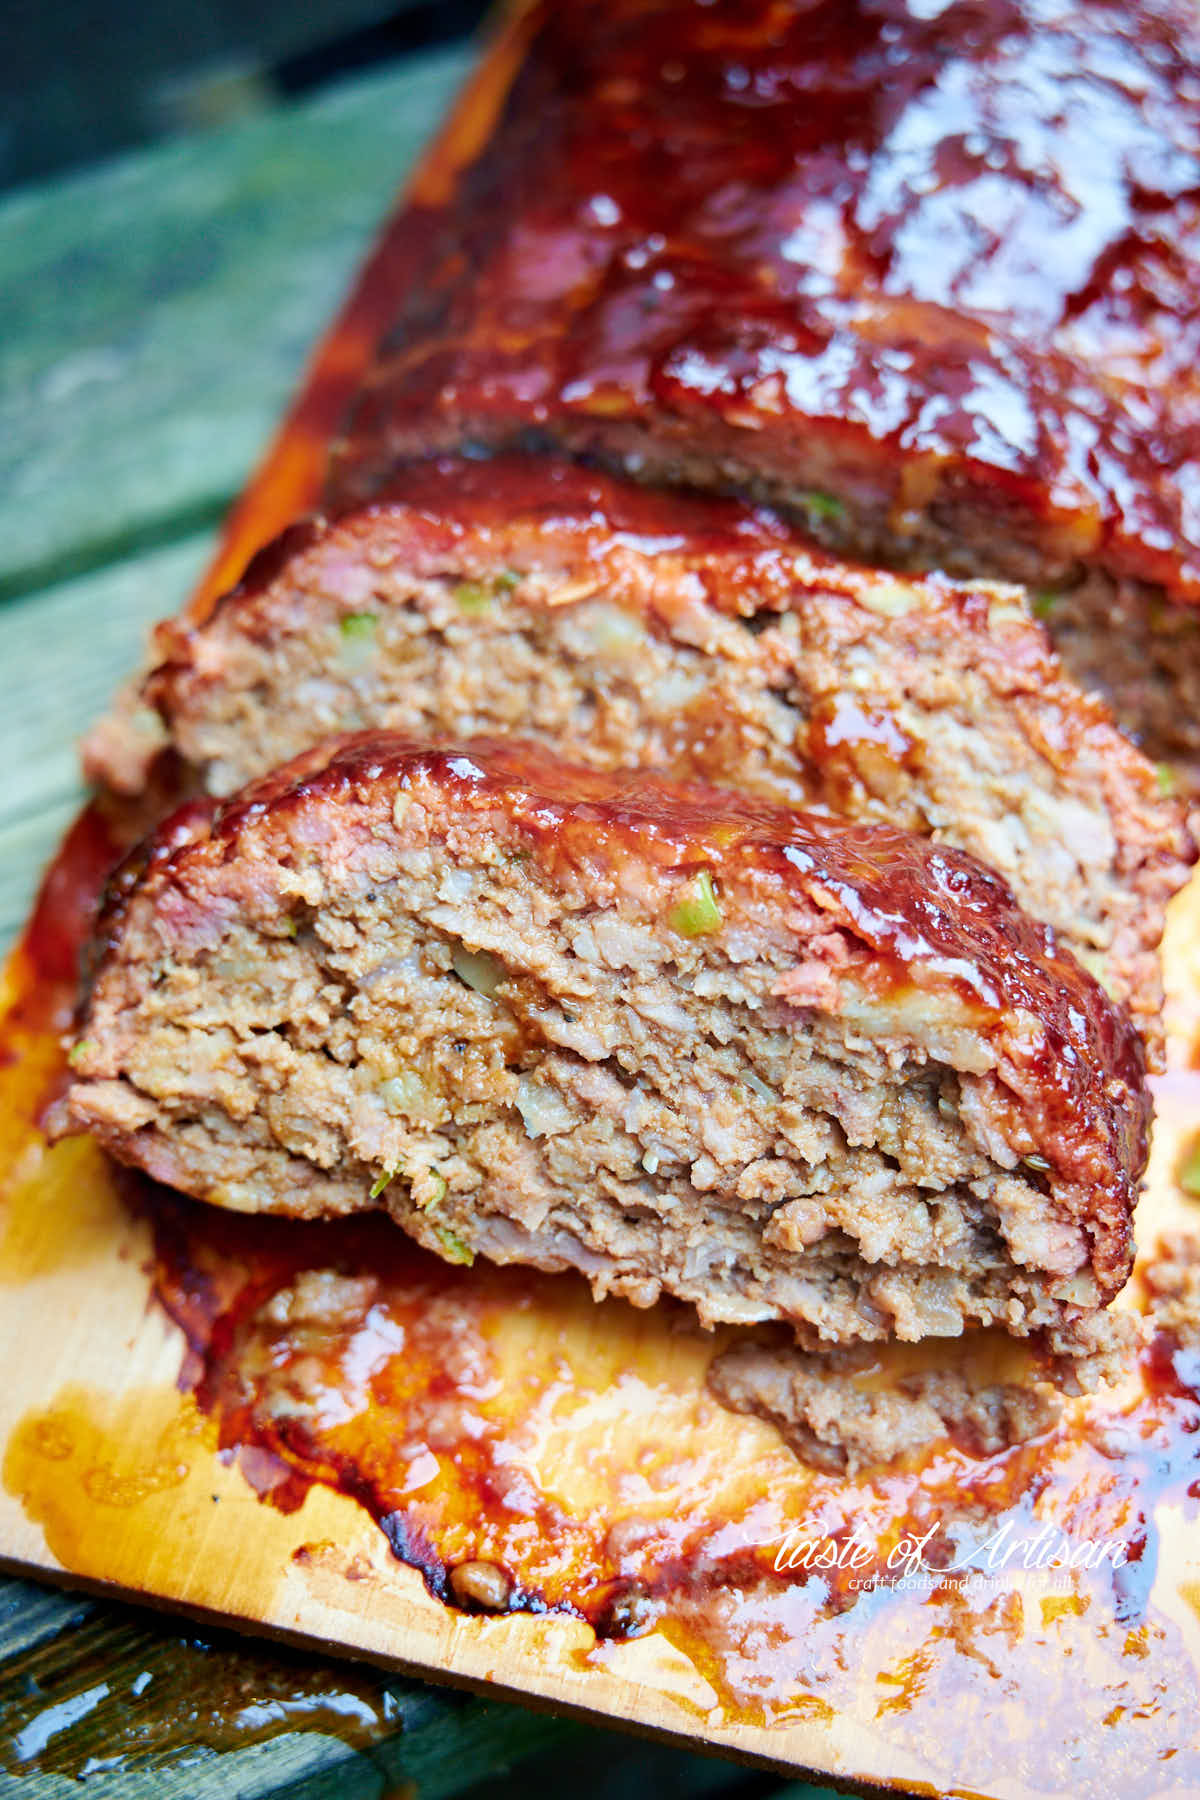 Smoked Meatloaf Taste Of Artisan